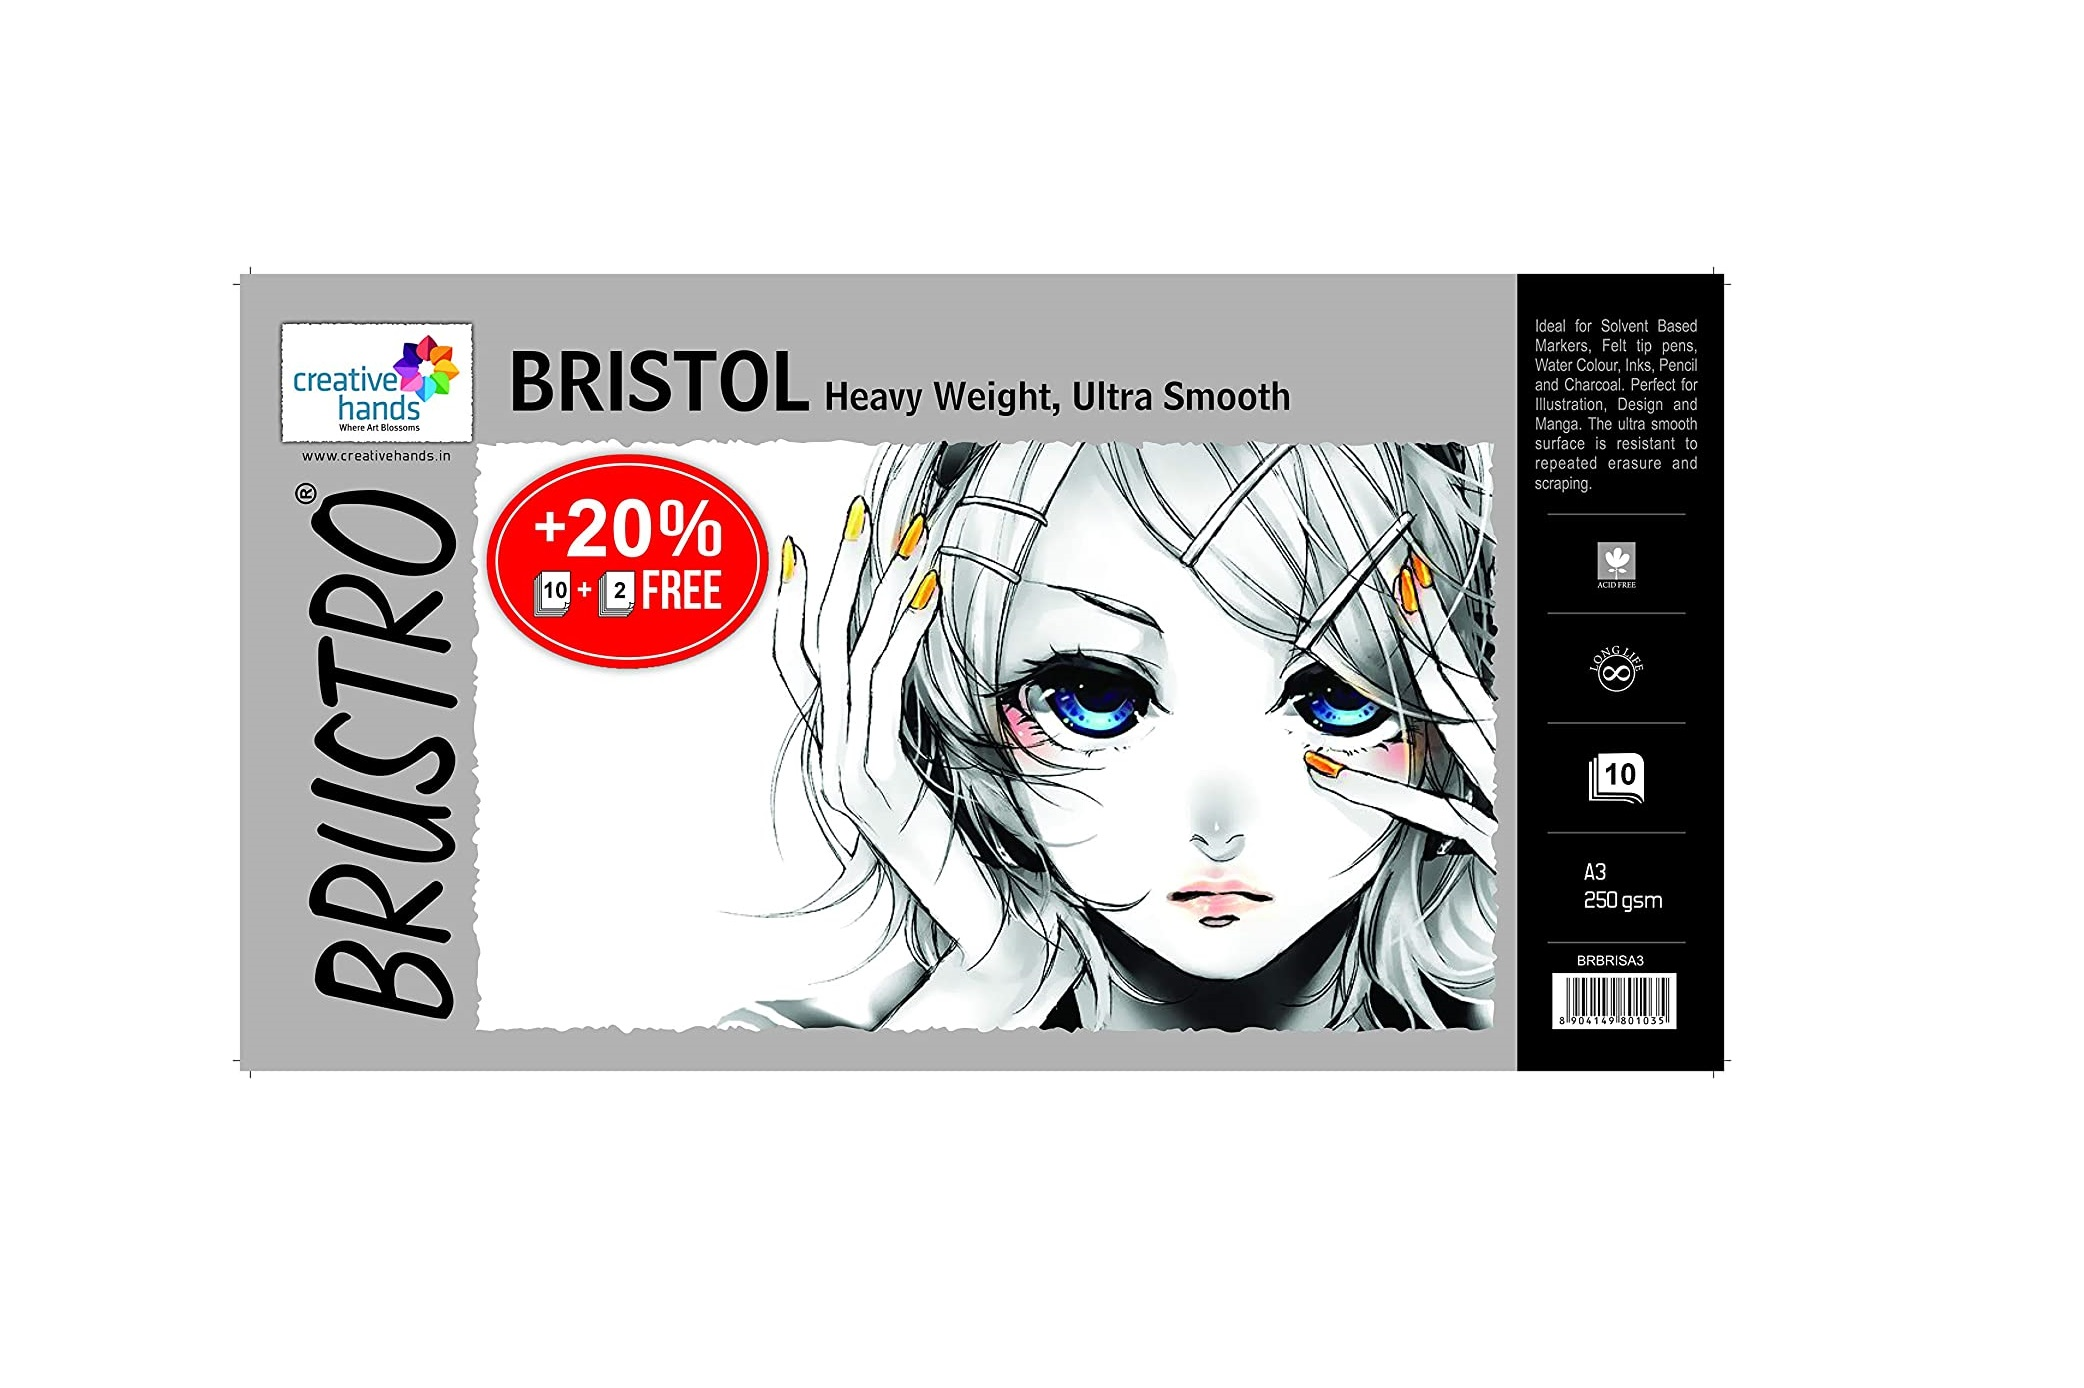 Brustro Ultra Smooth Bristol A3 Size Sheets, 250 GSM (Pack of 10 + 2 Free Sheets)